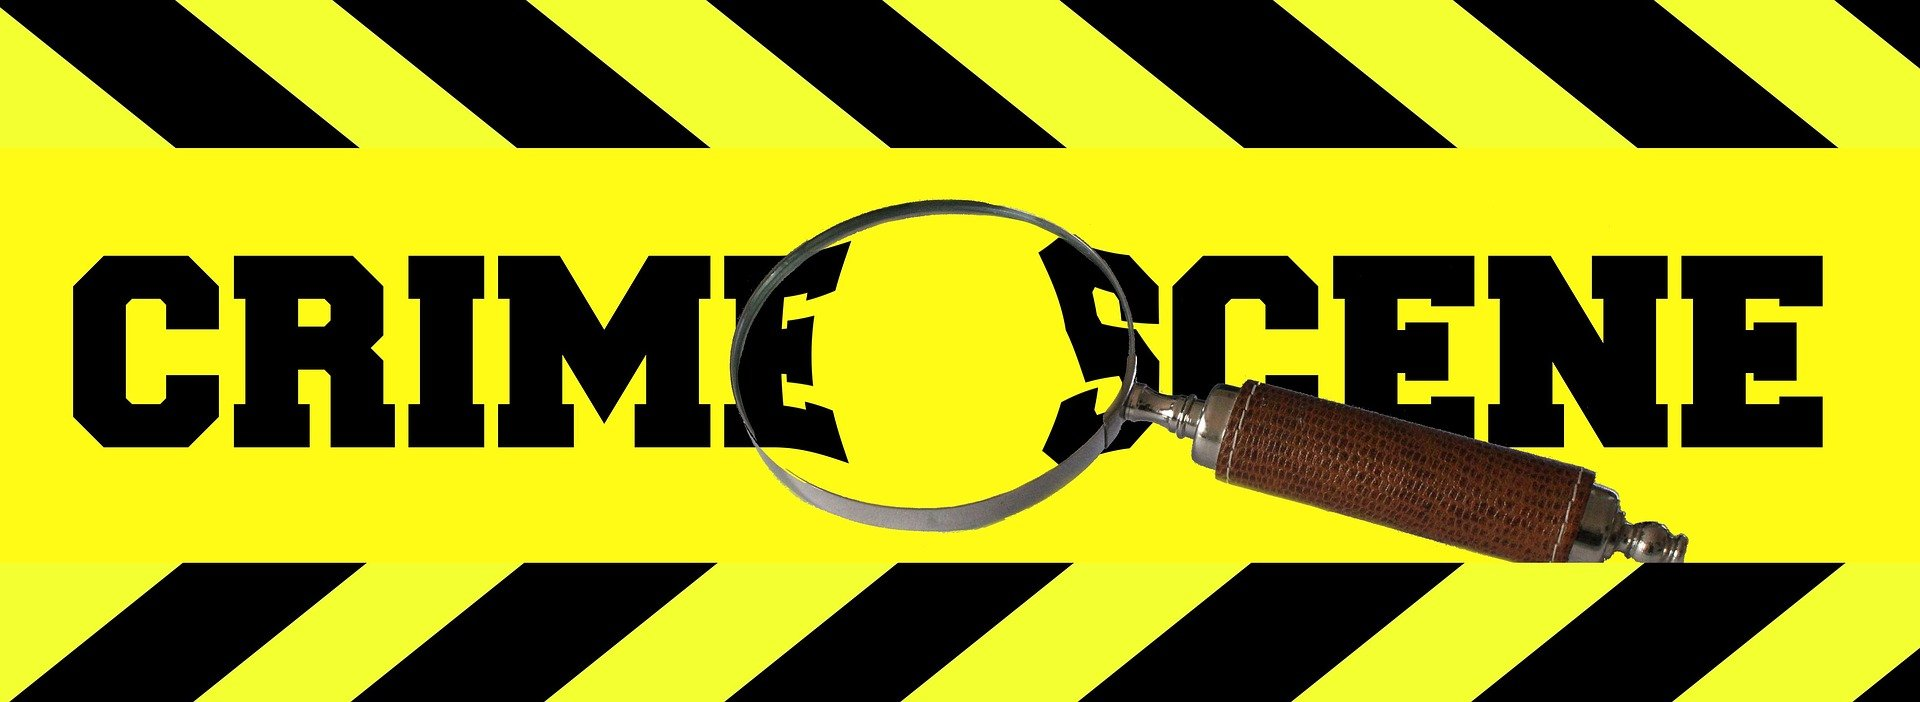 Pictured - A crime scene tape and a magnifying glass | Source: Pixabay